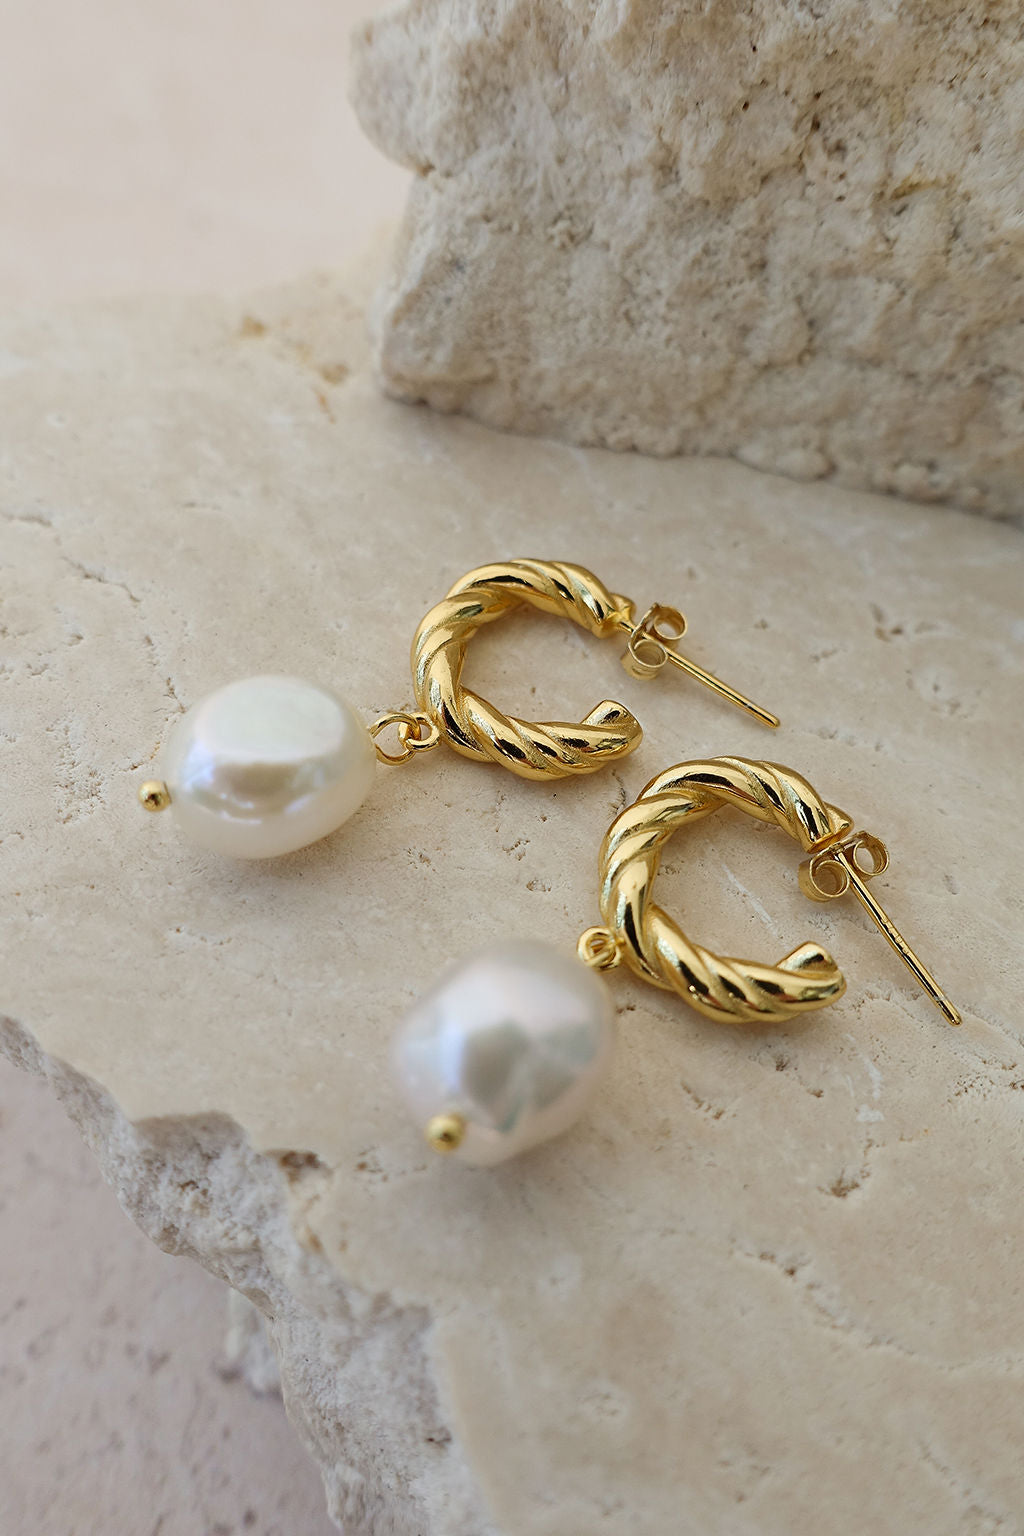 18k Gold Plated Freshwater Pearl Earrings. These earrings are the perfect occasion staple. Dress them up or dress them down. By Boehm has a huge range of earrings for any occasion. @byboehm www.boehmintimates.com